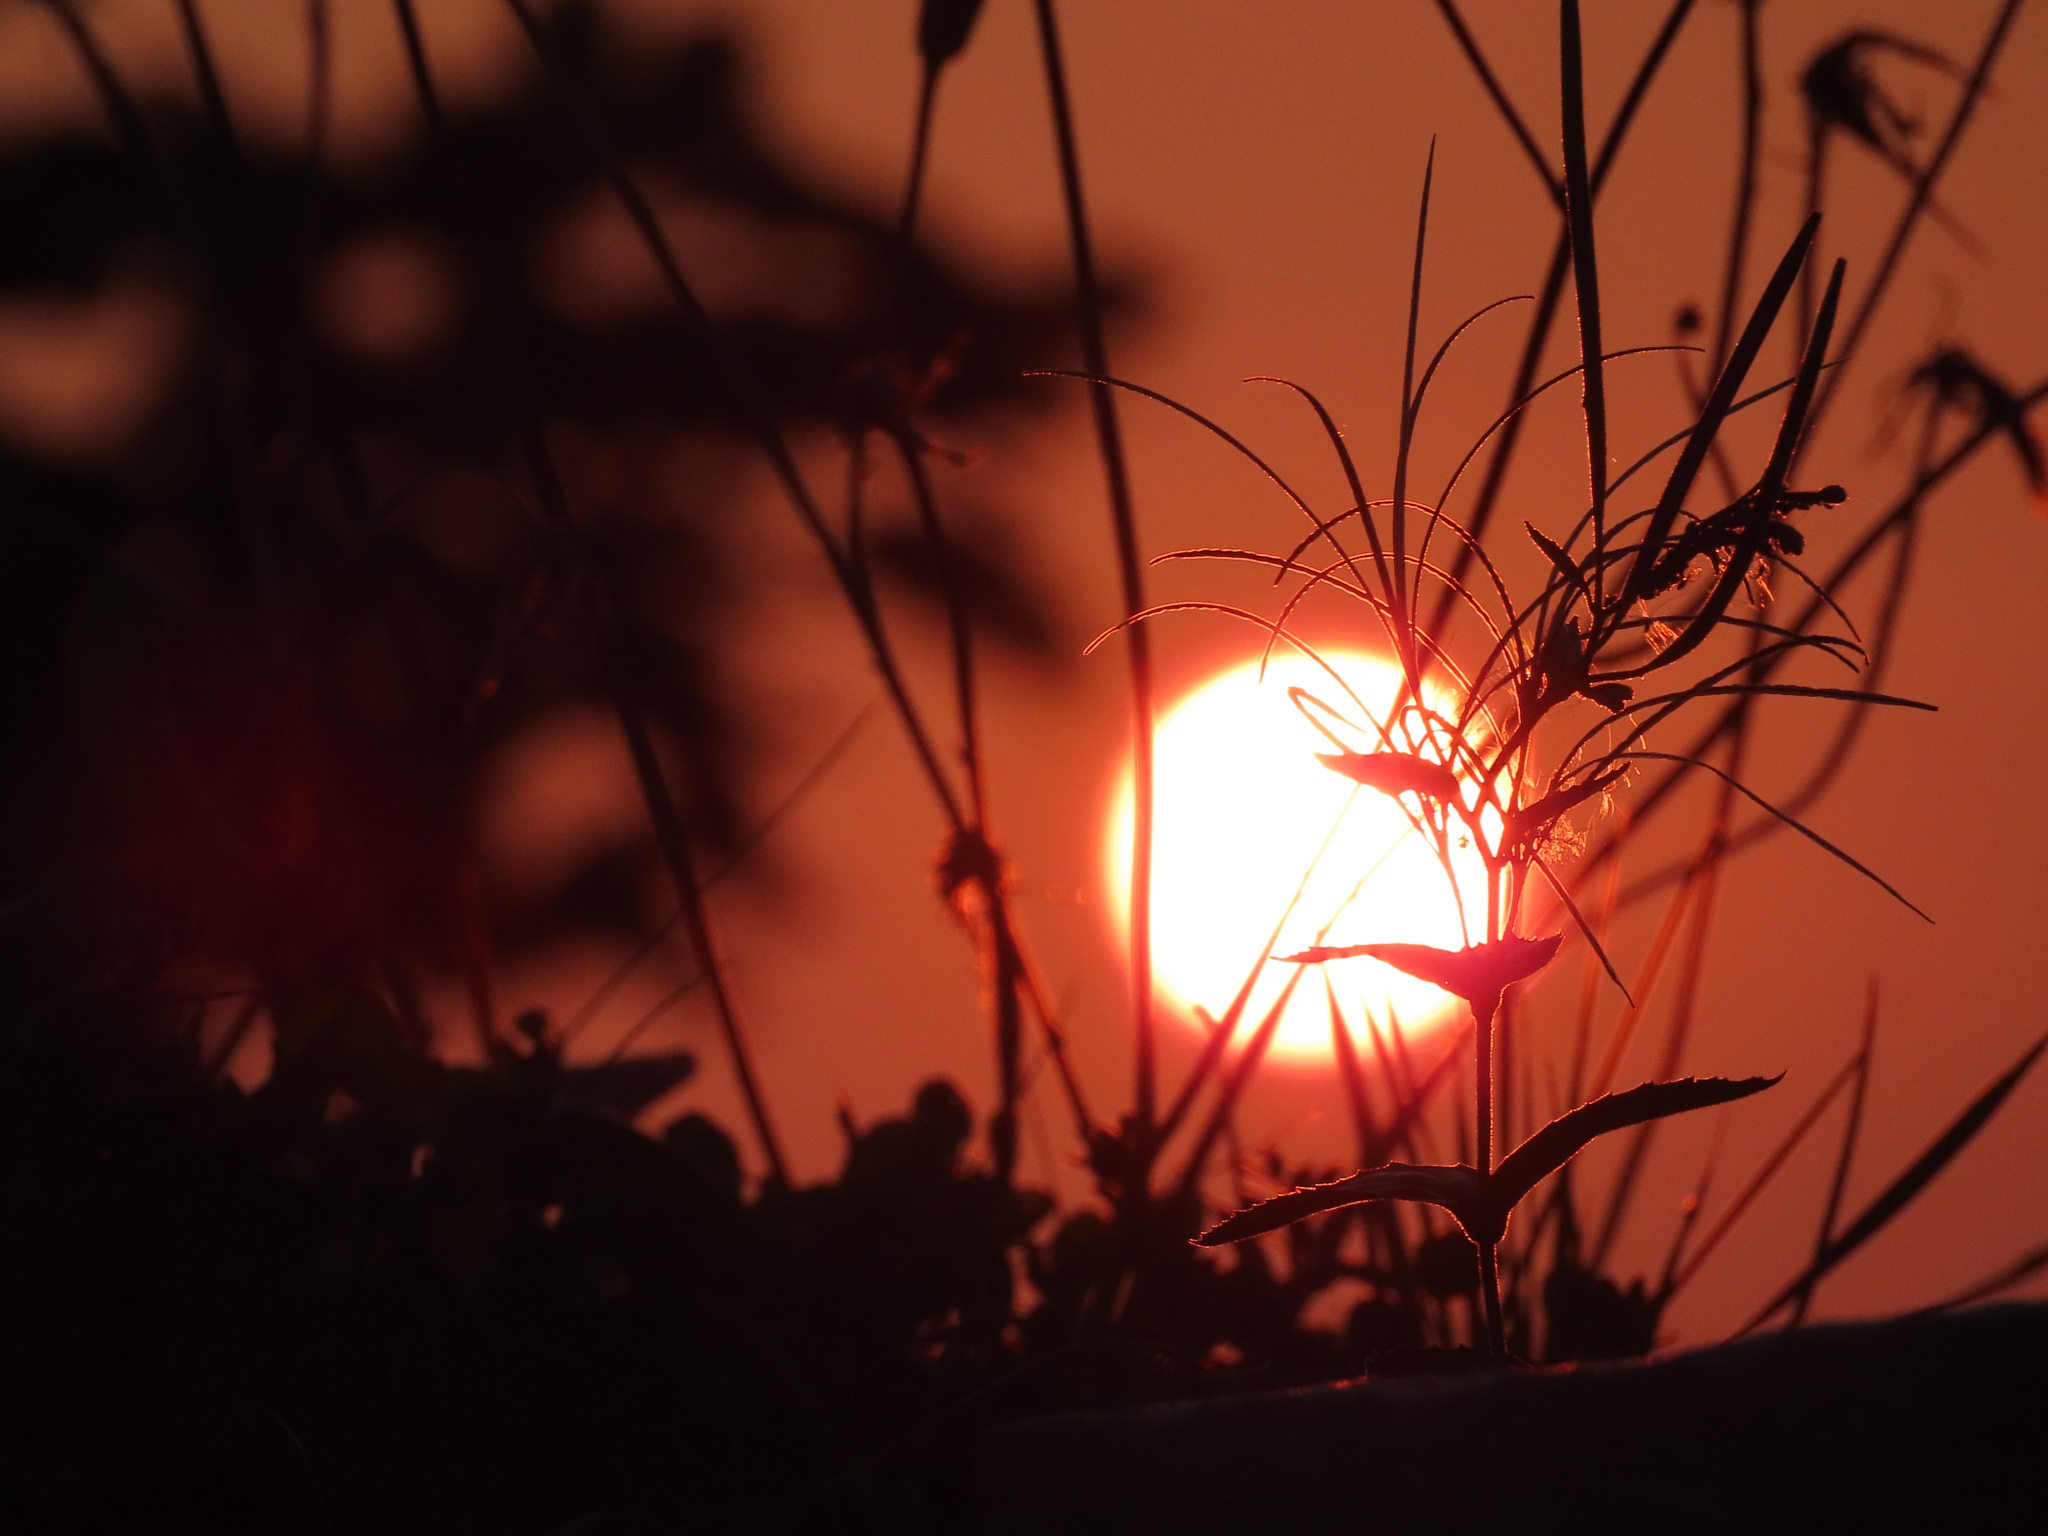 #Straw in sunset by marit